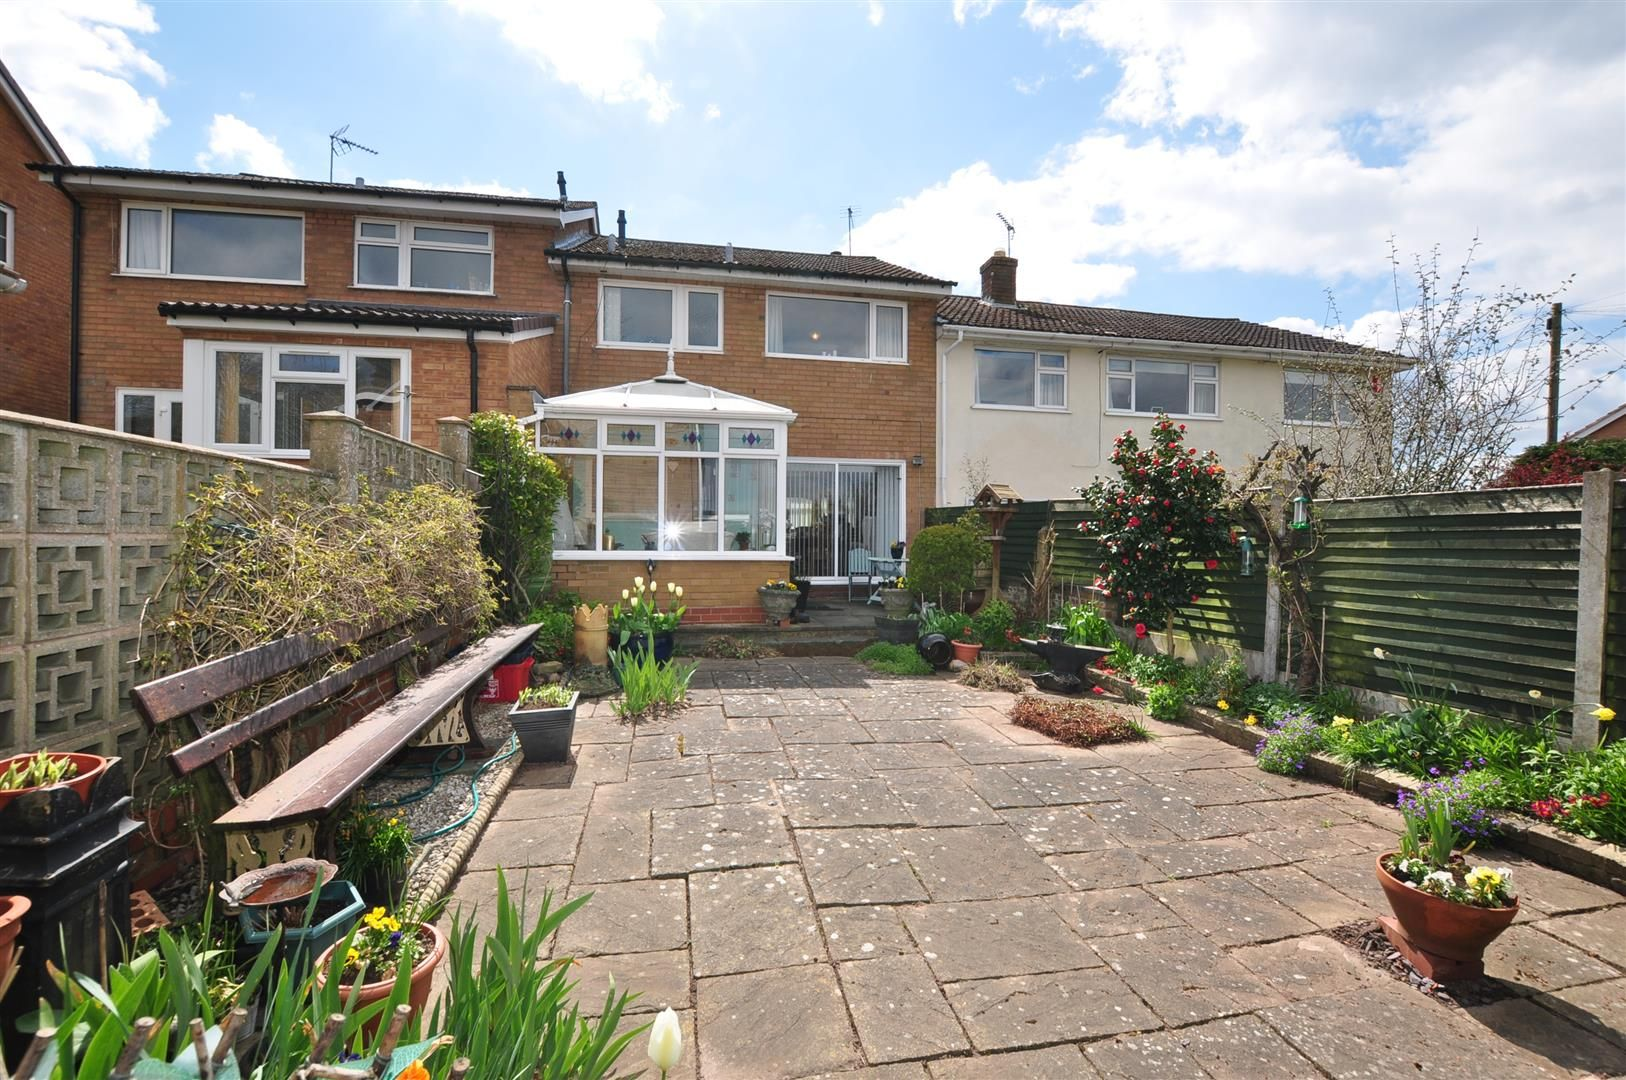 3 bed house for sale in Hagley  - Property Image 14